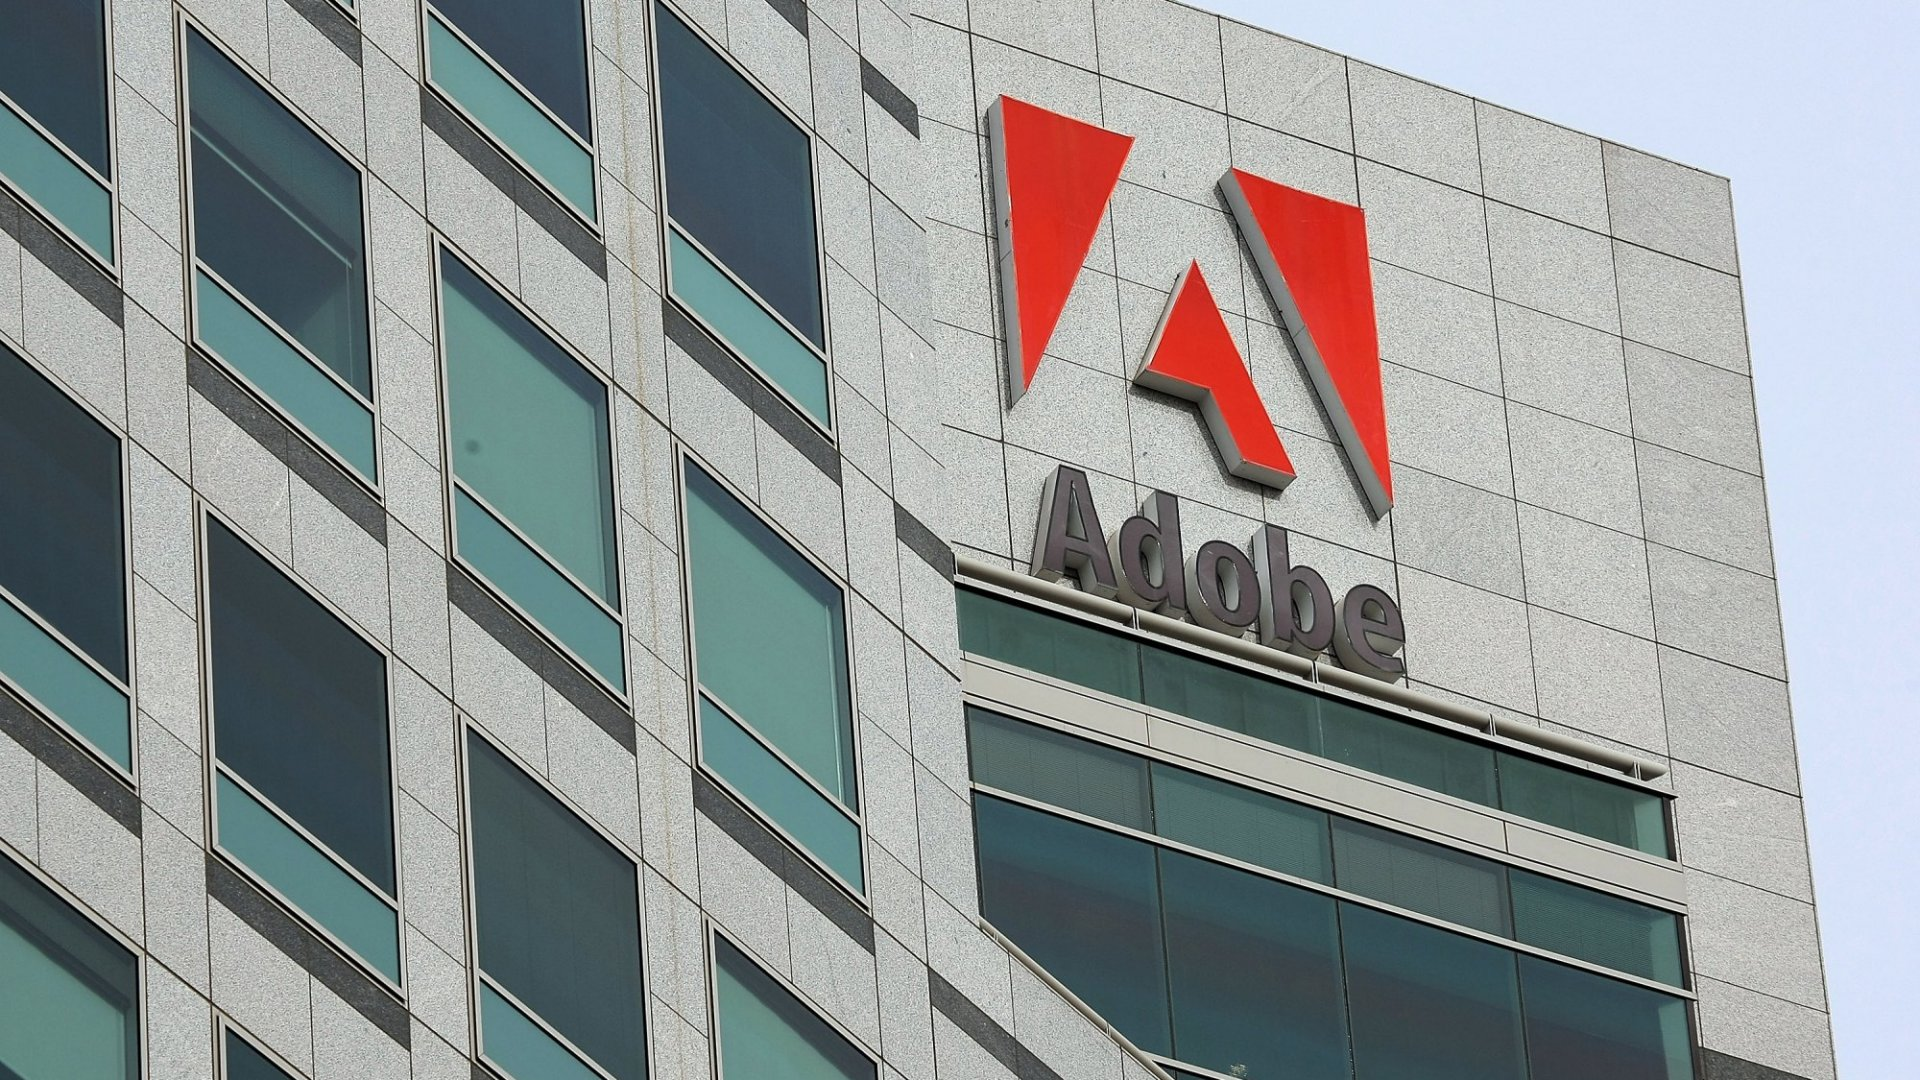 The 3 Secrets of Adobe's Billion-Dollar Revenue Engine (You Should Steal These)